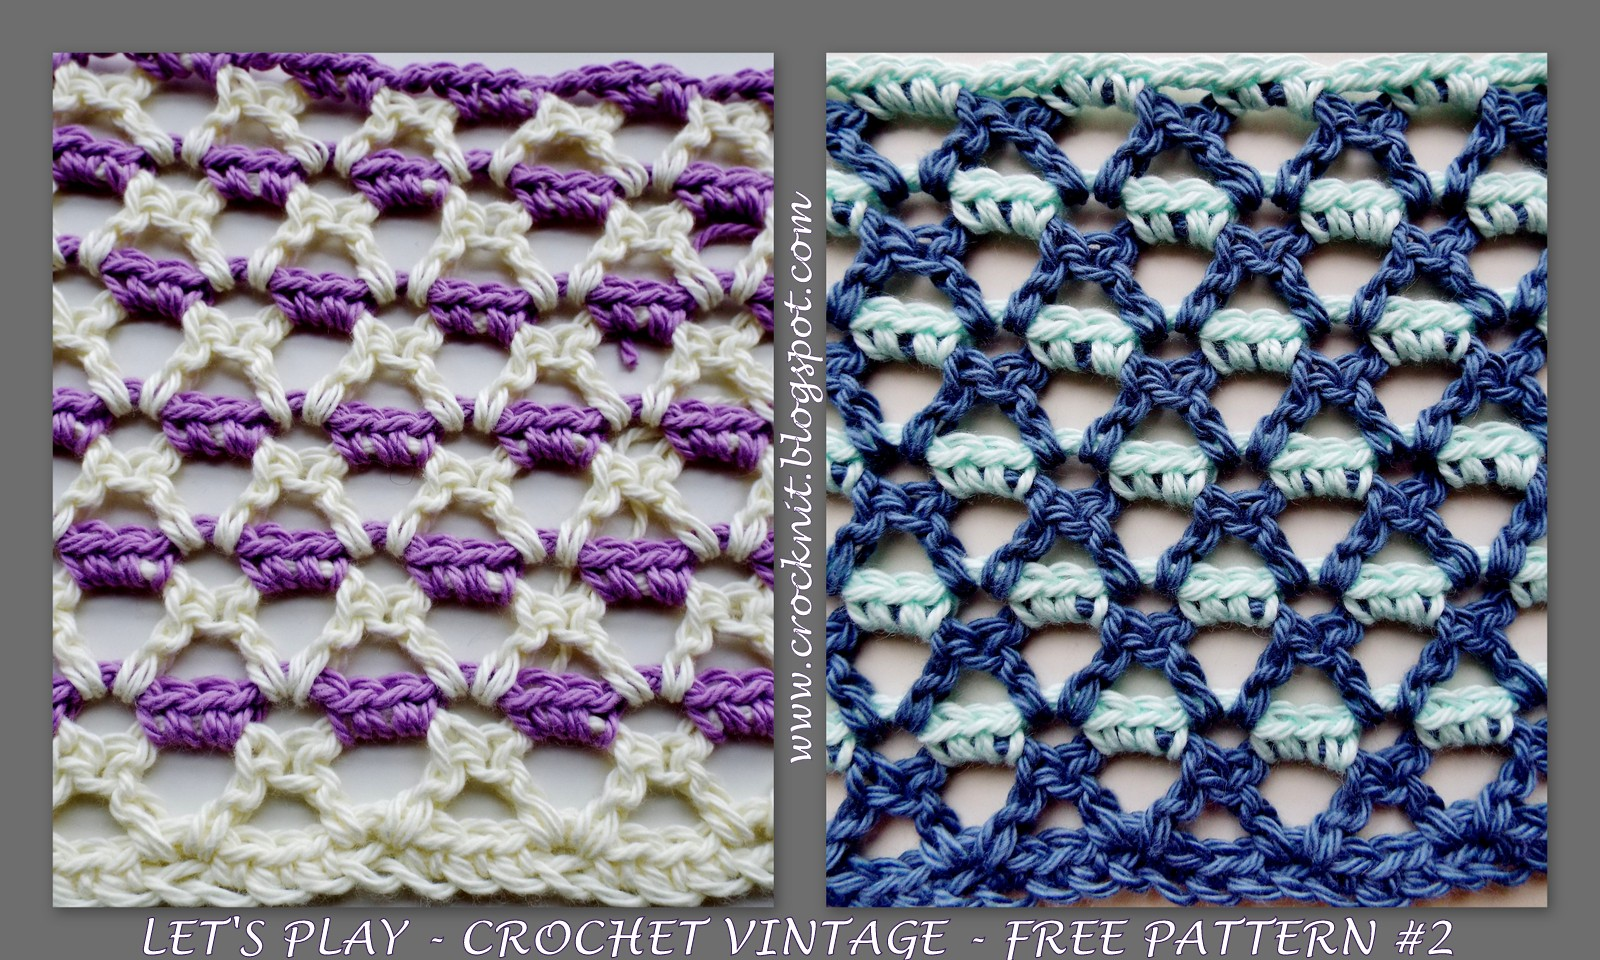 MICROCKNIT CREATIONS: LETS PLAY - CROCHET VINTAGE - FREE PATTERN #2